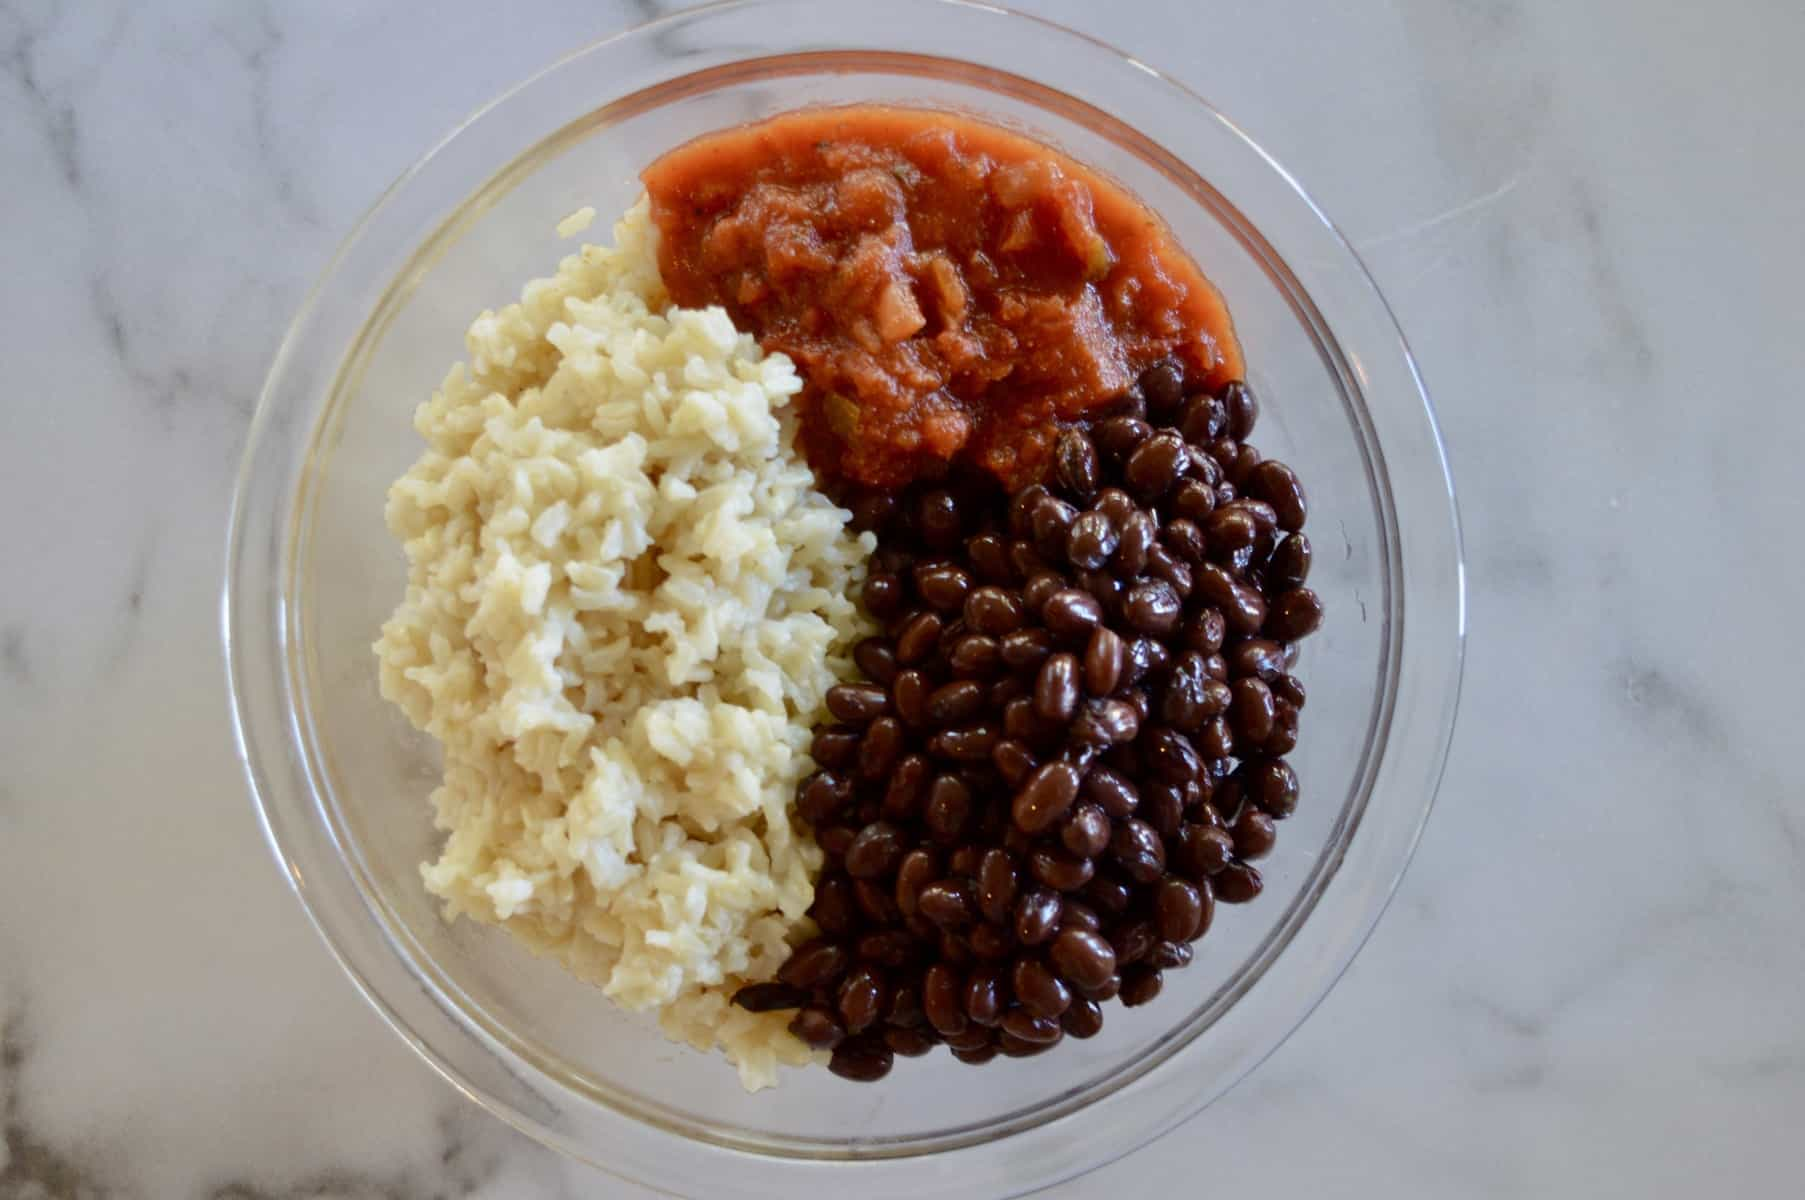 brown rice, black beans, and salsa in a glass bowl